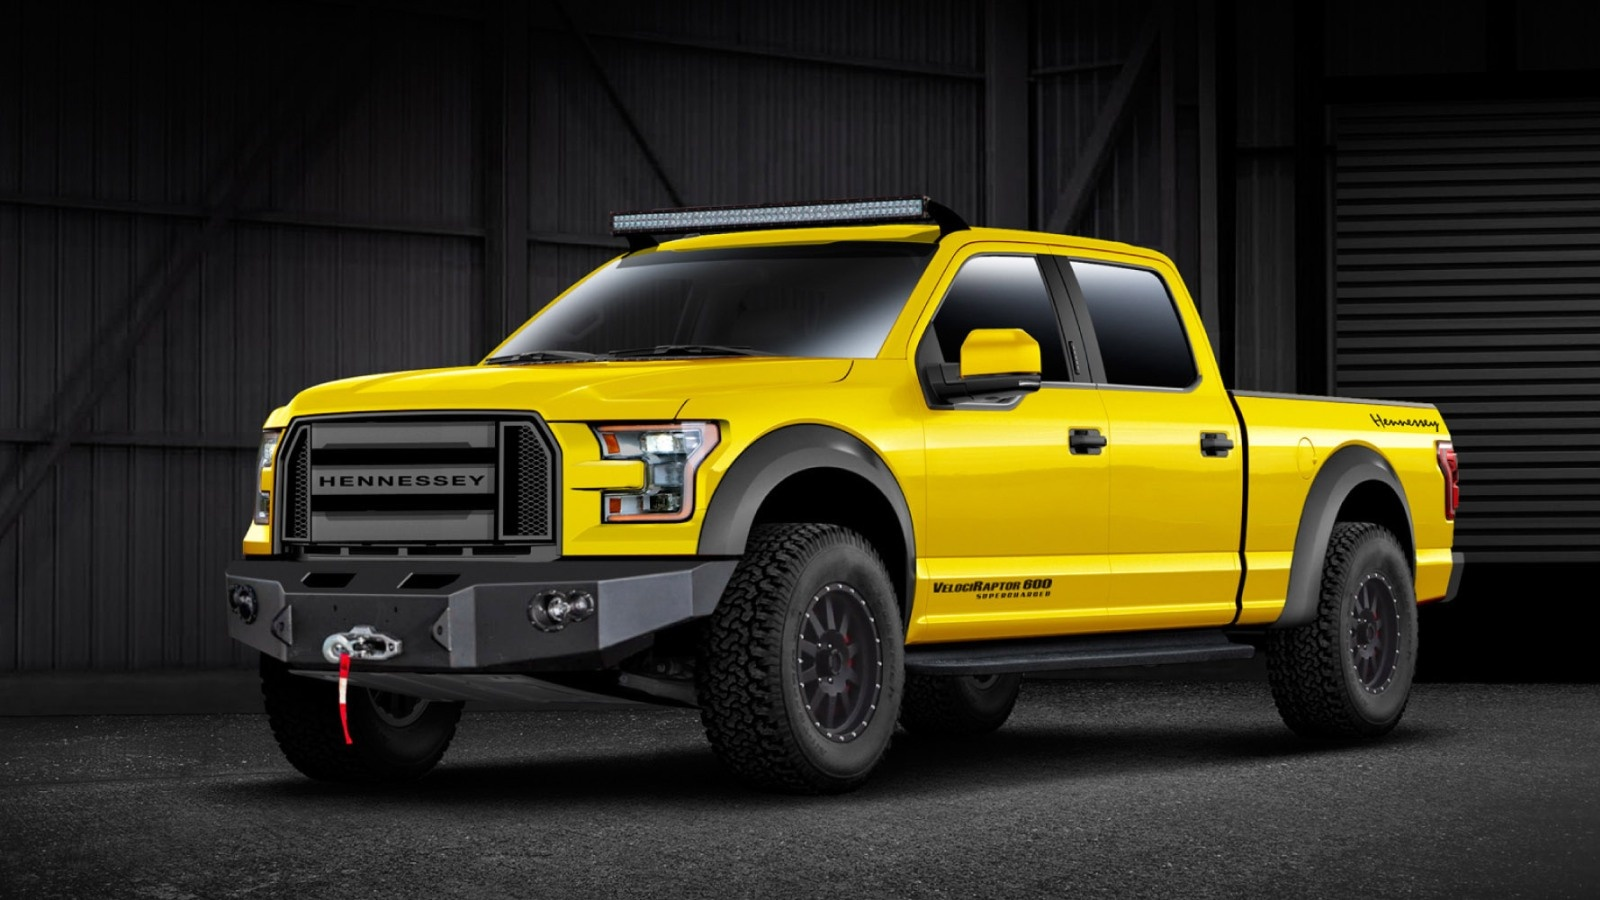 hennessey ford velociraptor 600 supercharged 2015 wallpapers